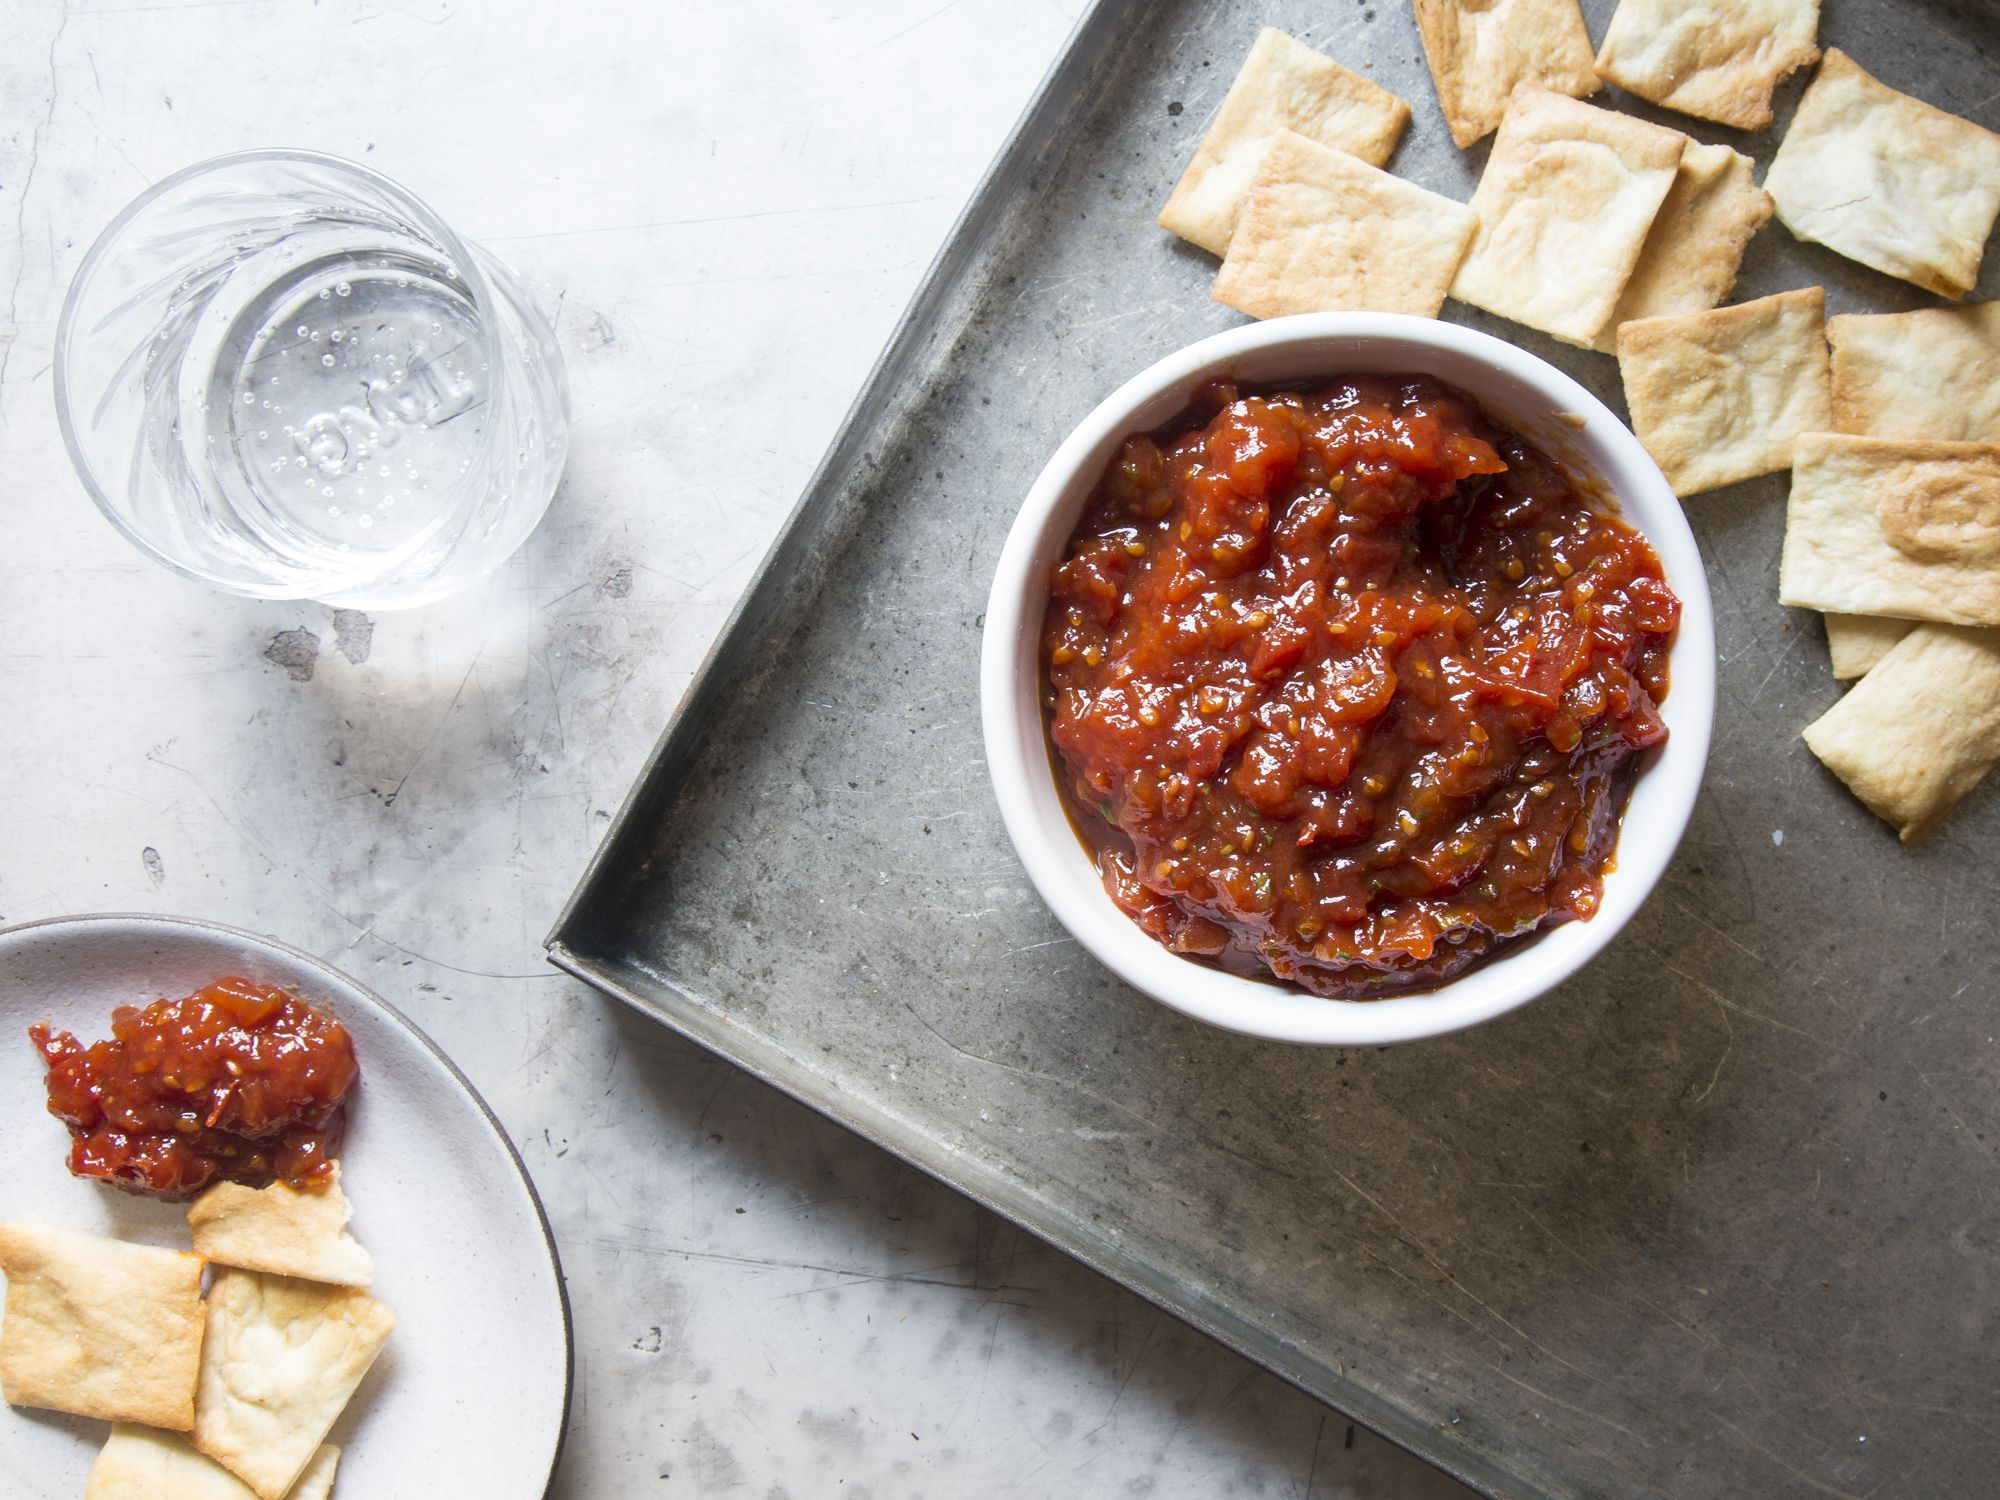 "Your glut of garden tomatoes just found their new home: stirred into caramelized honey and a host of herbs and spices. Get the recipe for <a href=""https://www.saveur.com/summer-tomato-and-herb-dip-recipe/"">Summer Tomato and Herb Dip</a>"